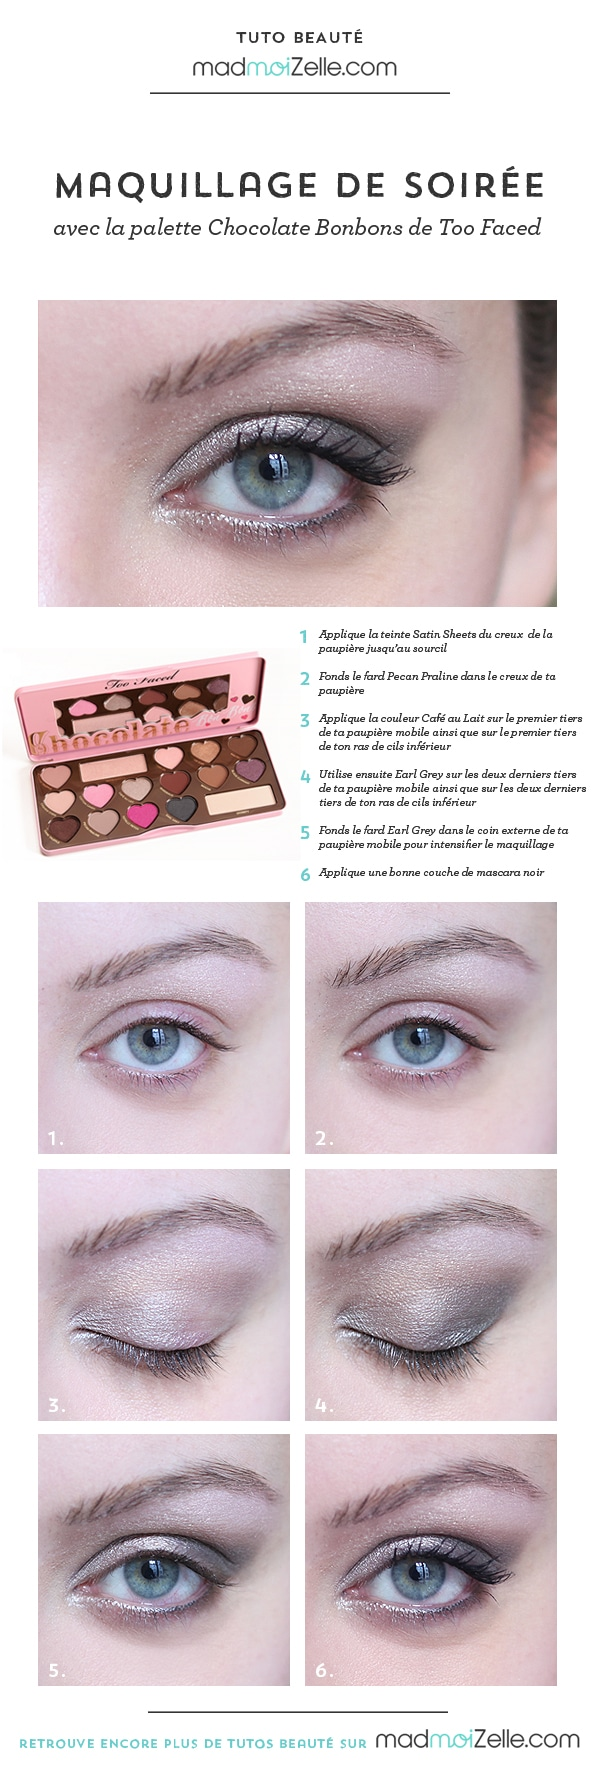 tuto-pinterest-chocolate-bonbons-too-faced